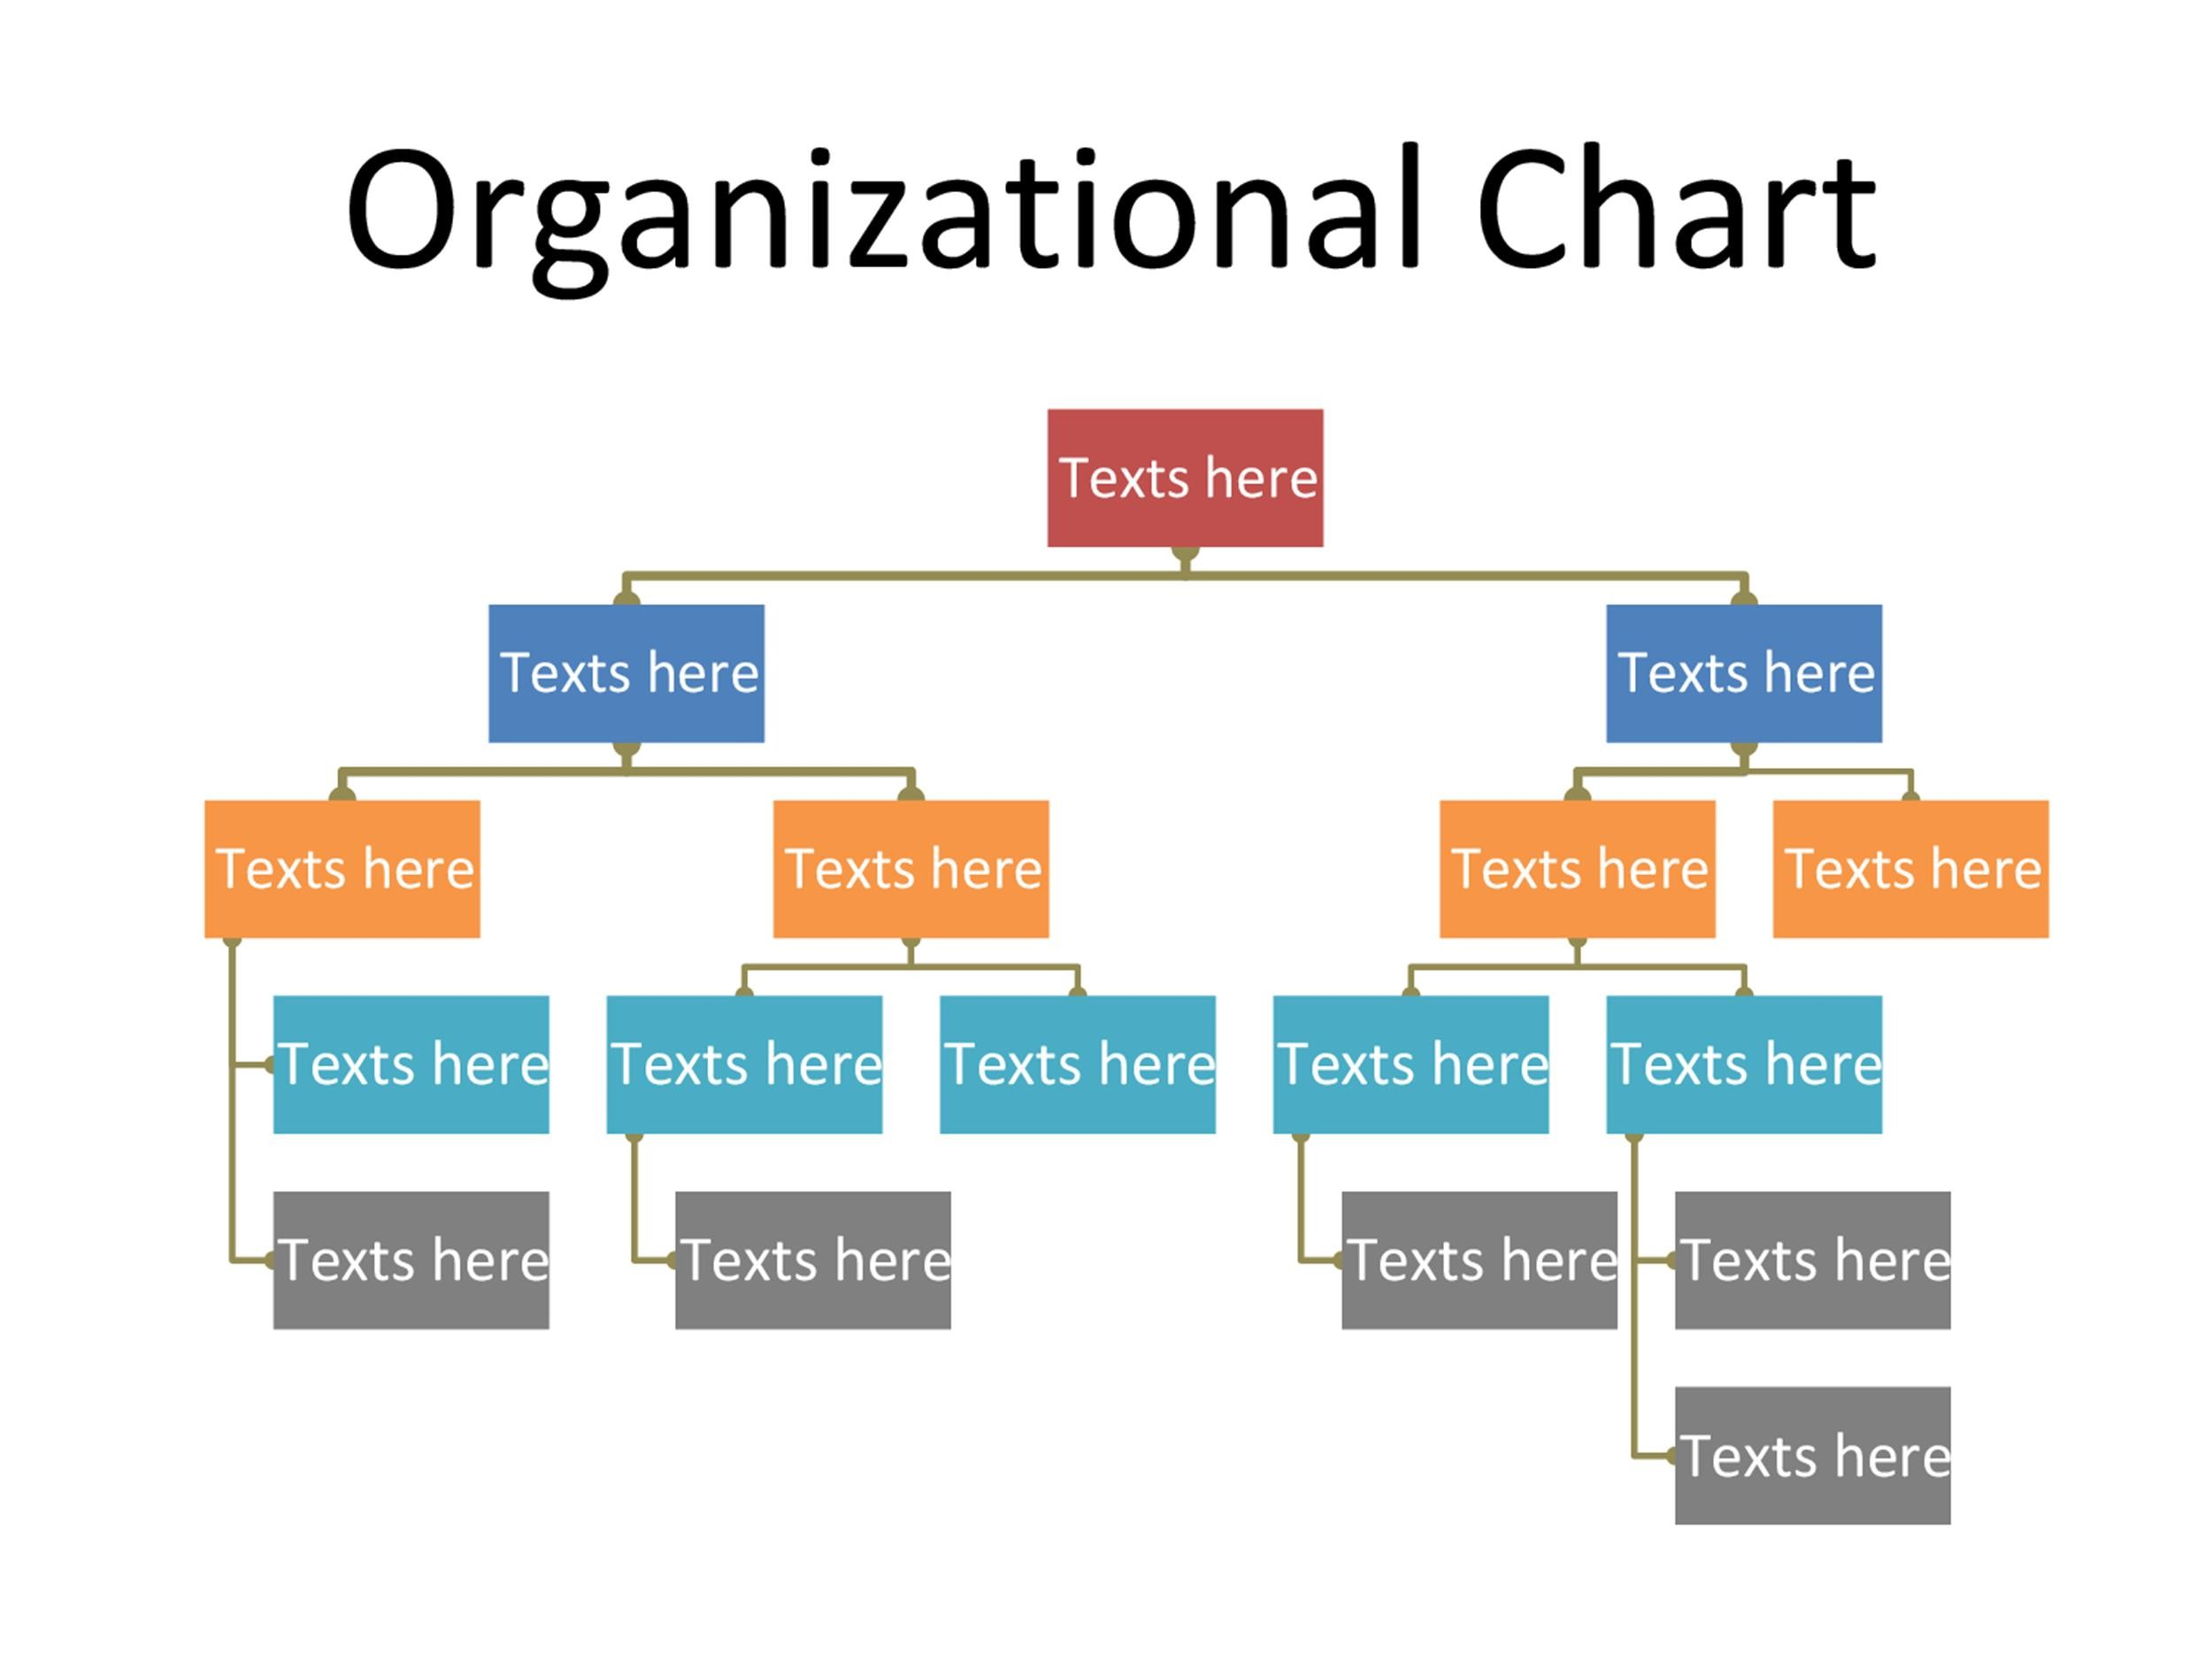 40 organizational chart templates word excel powerpoint for Organizational charts templates for word